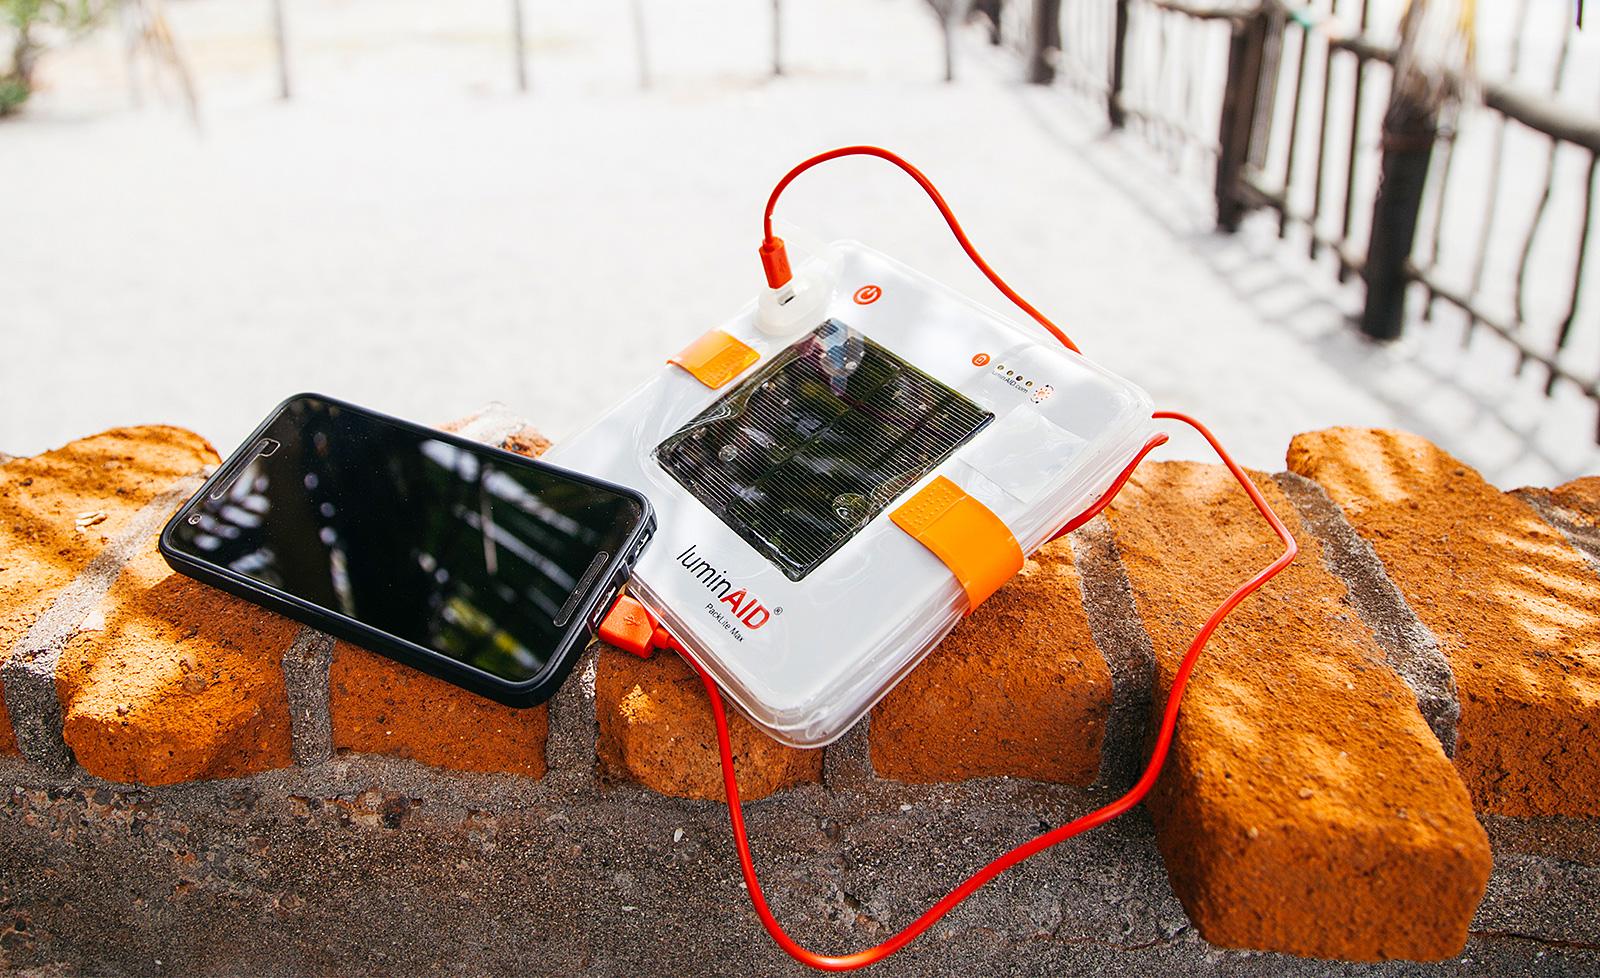 Bug-Out-Bag-Builder-PackLite-Max-2-in-1-Phone-Charger-4.jpg